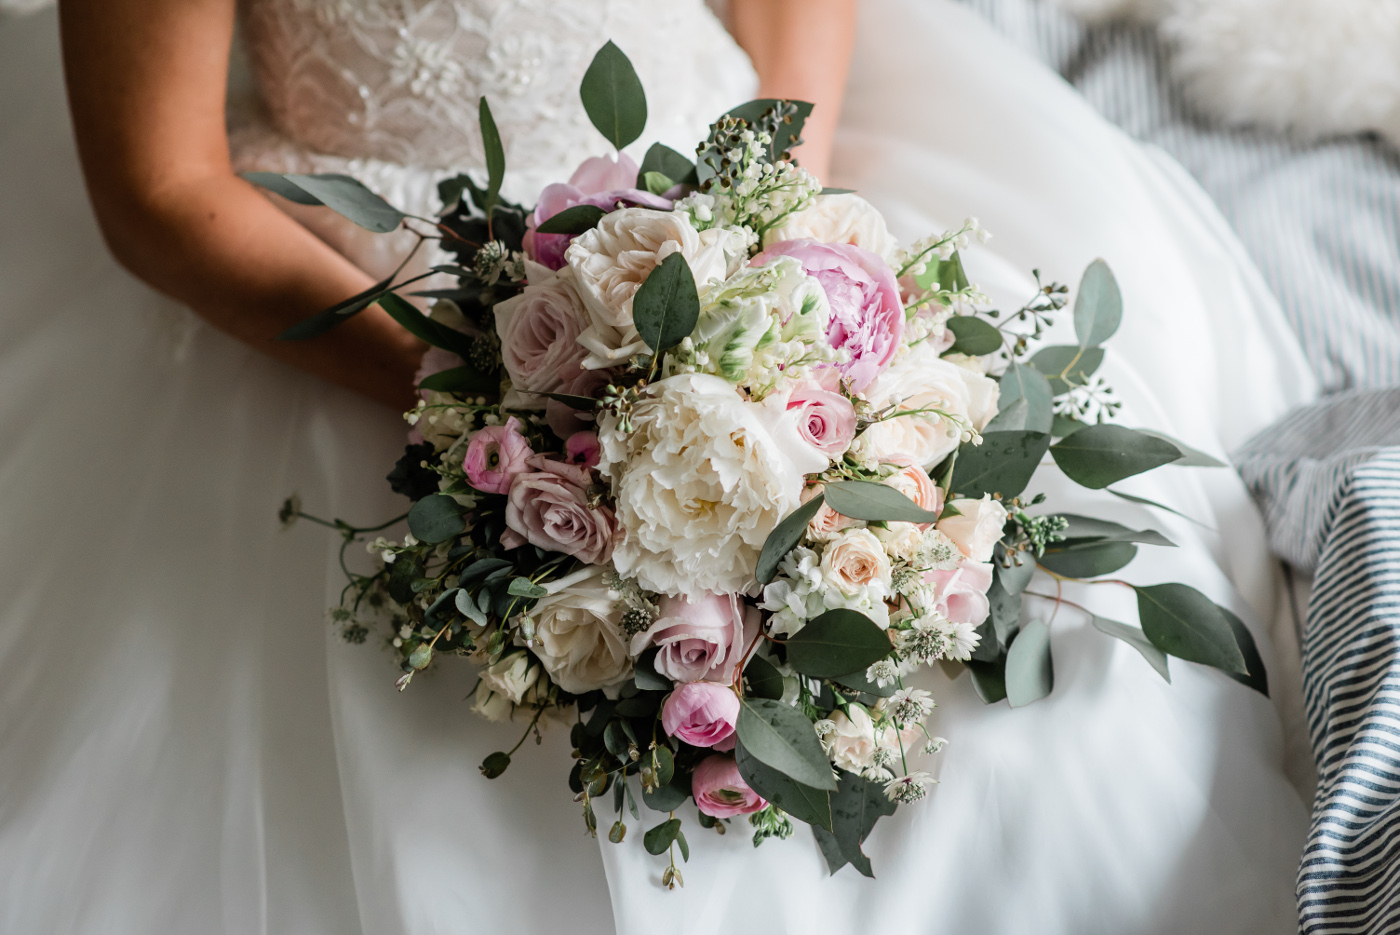 How To Make A Wedding Bouquet With Artificial Flowers The Best